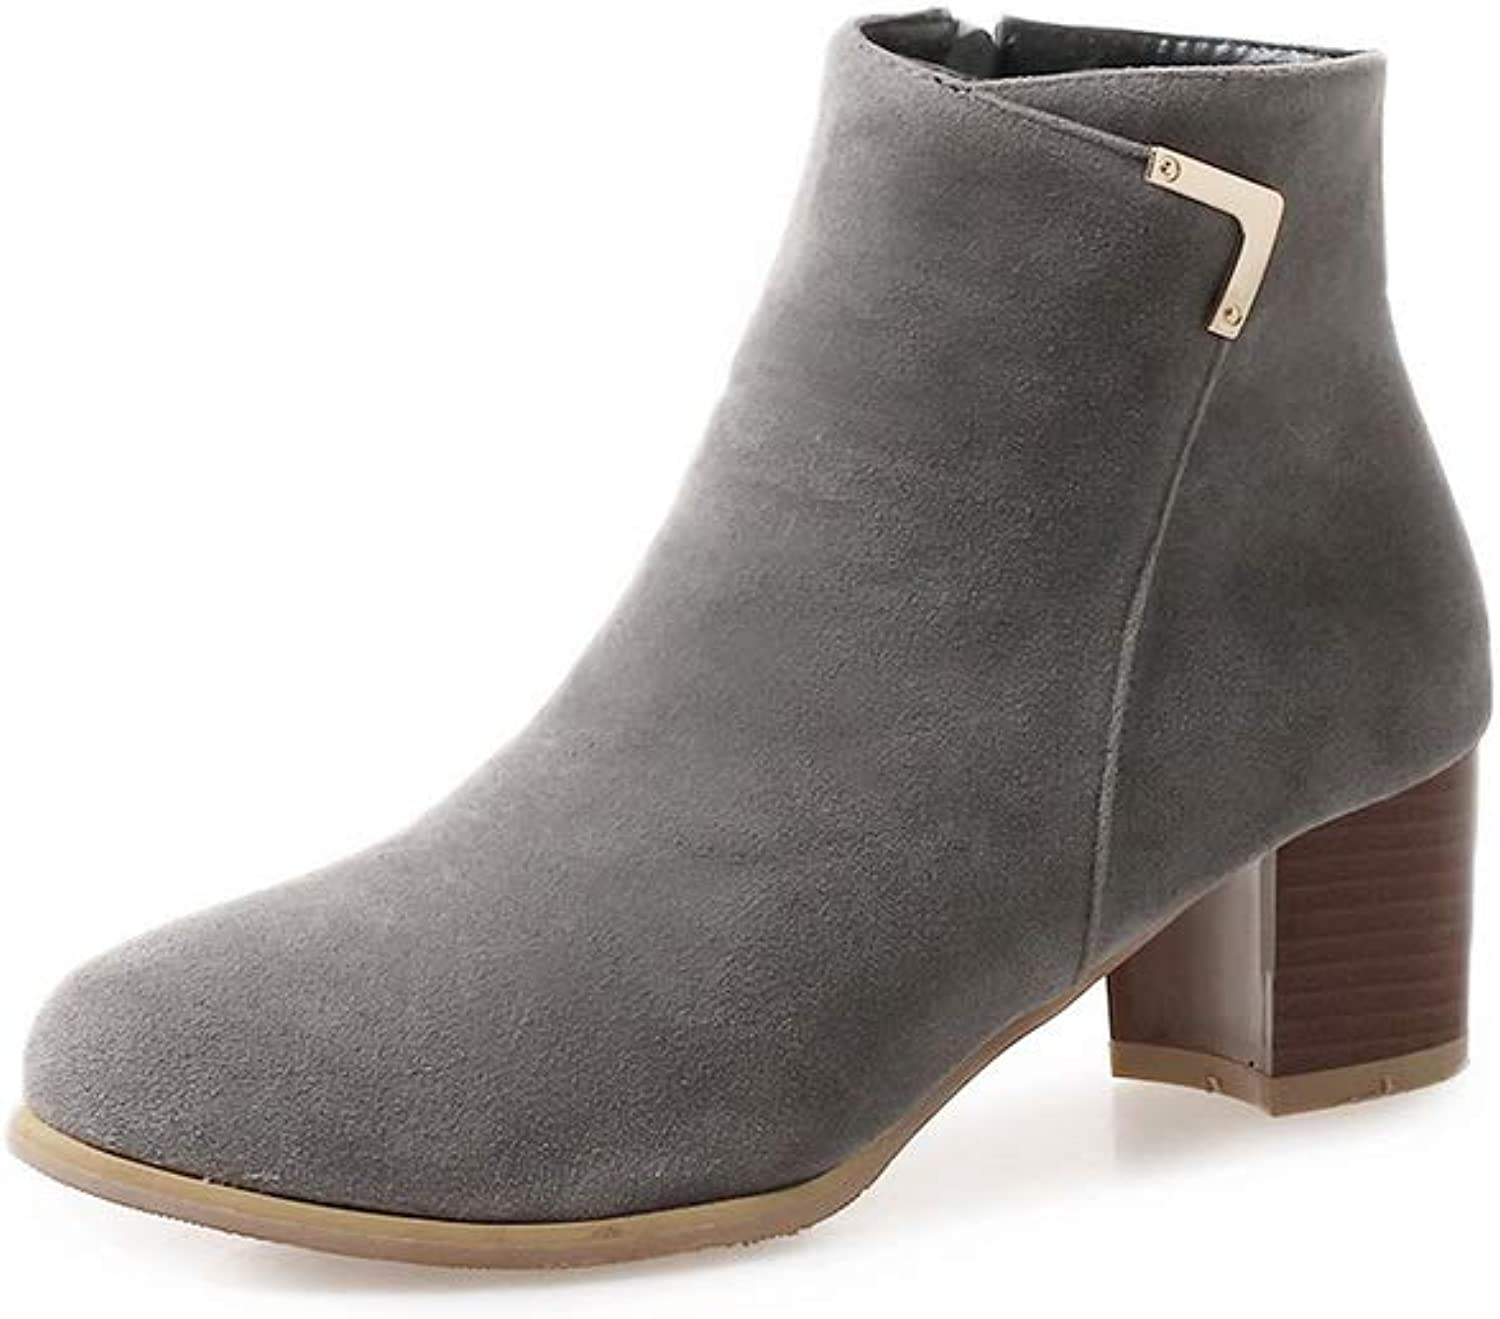 1TO9 Womens Solid Charms Nubuck Leather Boots MNS02753